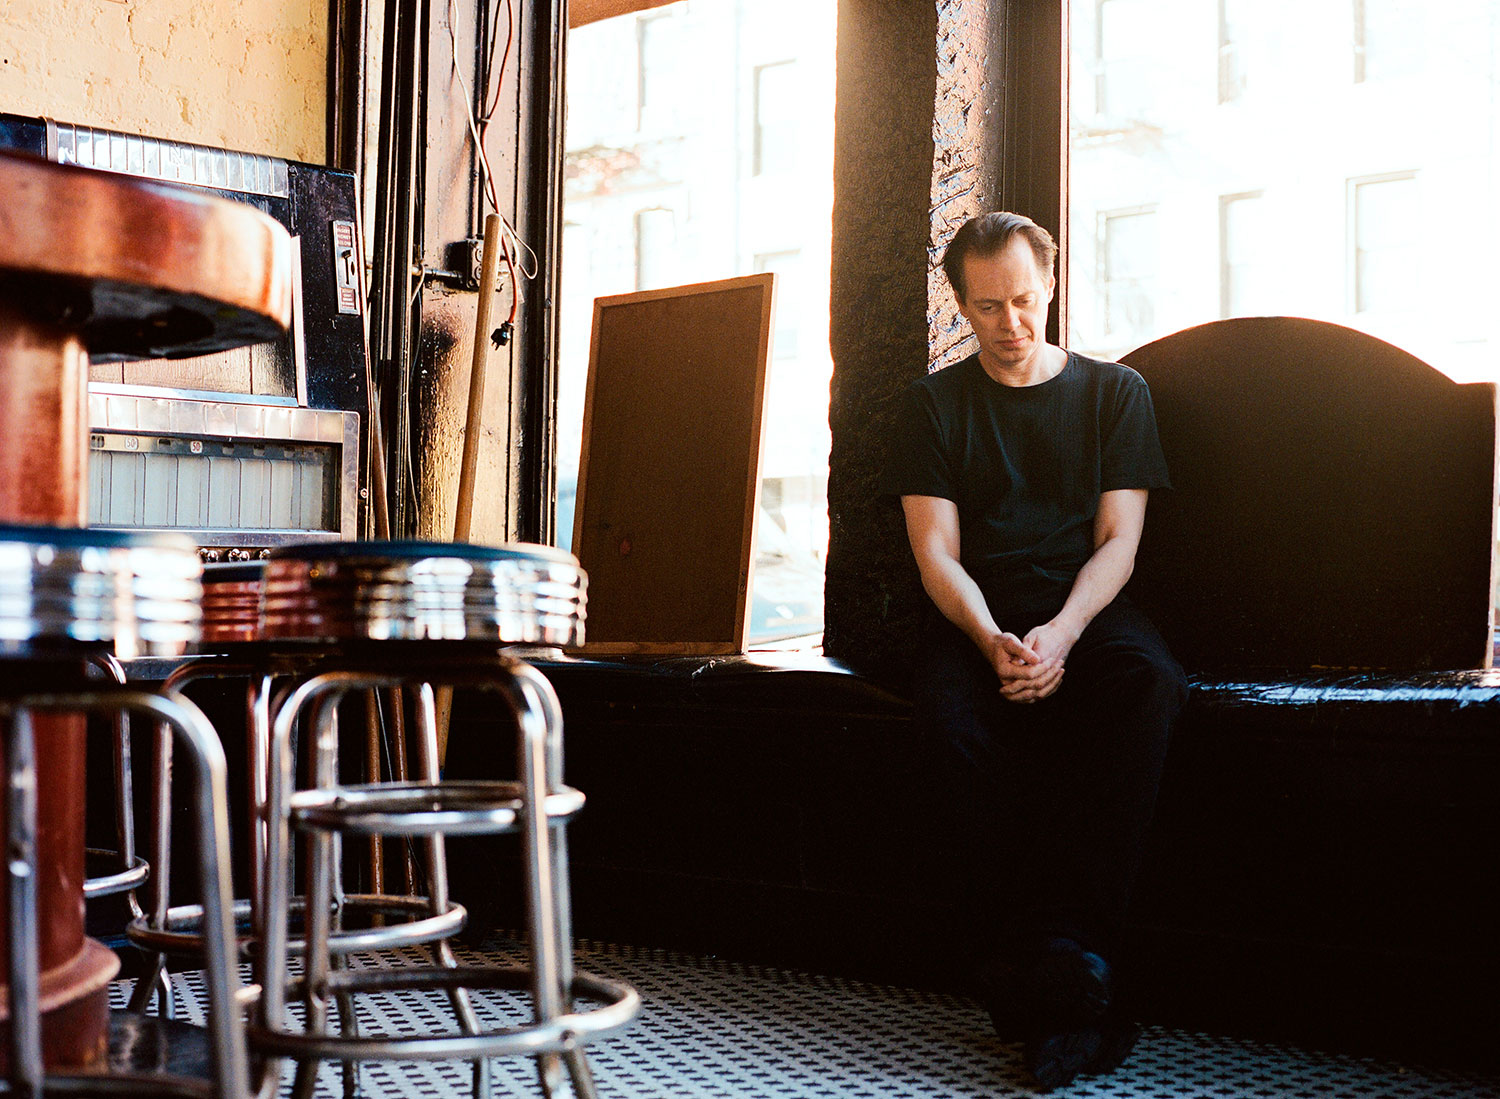 Steve Buscemi in black t-shirt at an empty bar, by Abbey Drucker